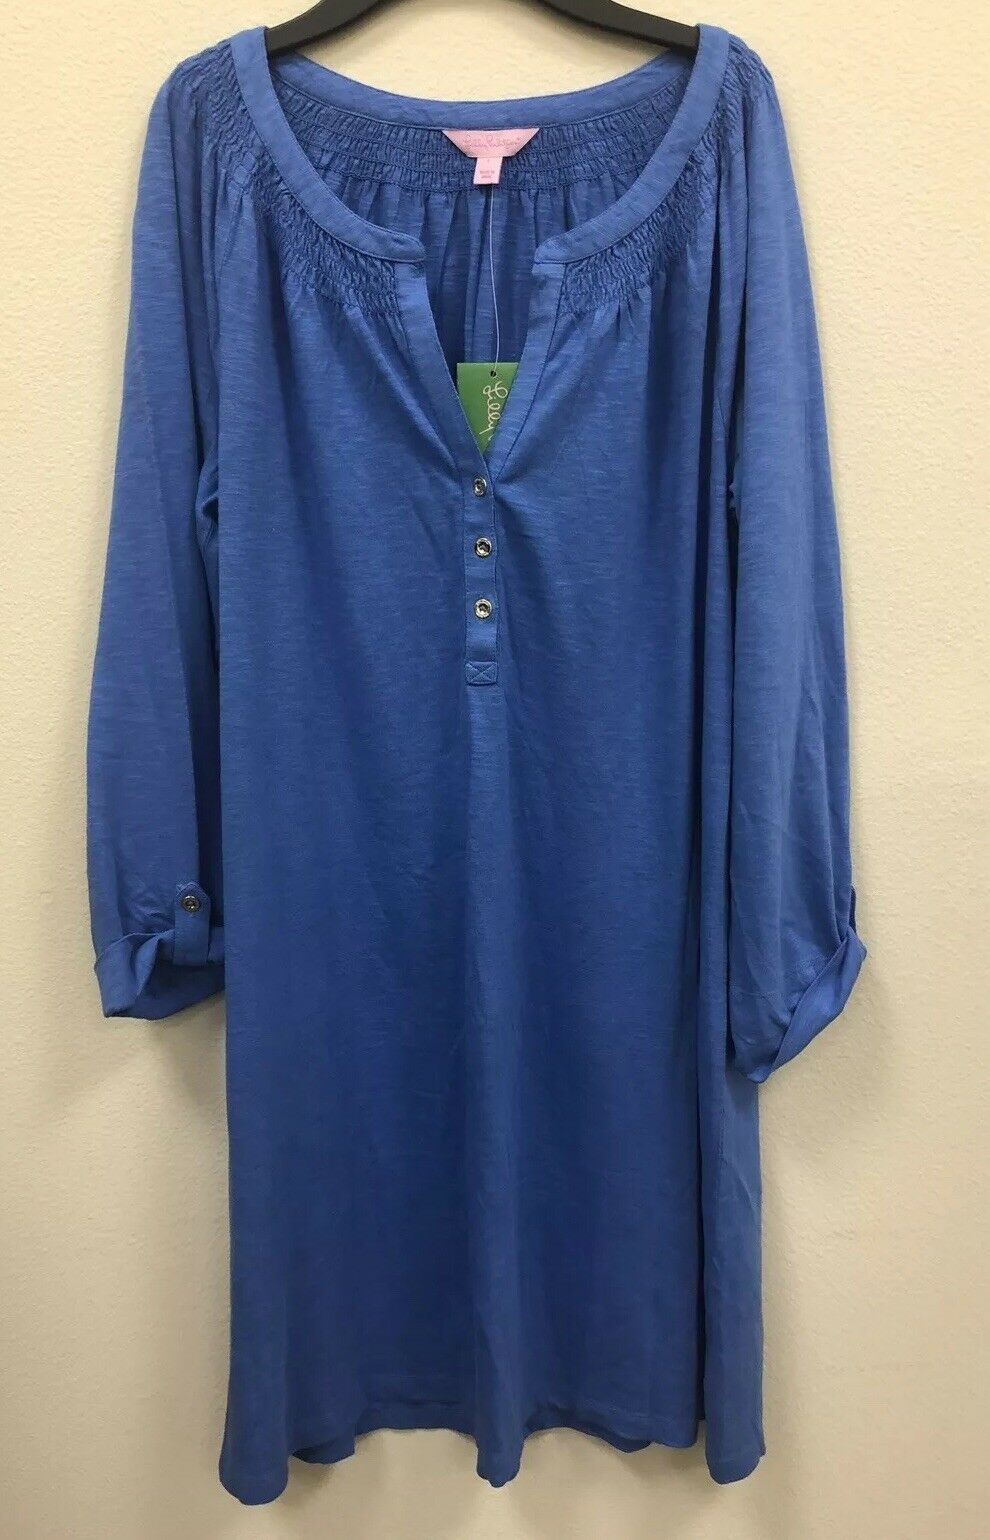 NWT   Lilly Pulitzer Essie Dress Long Sleeved Bennet bluee Size Large